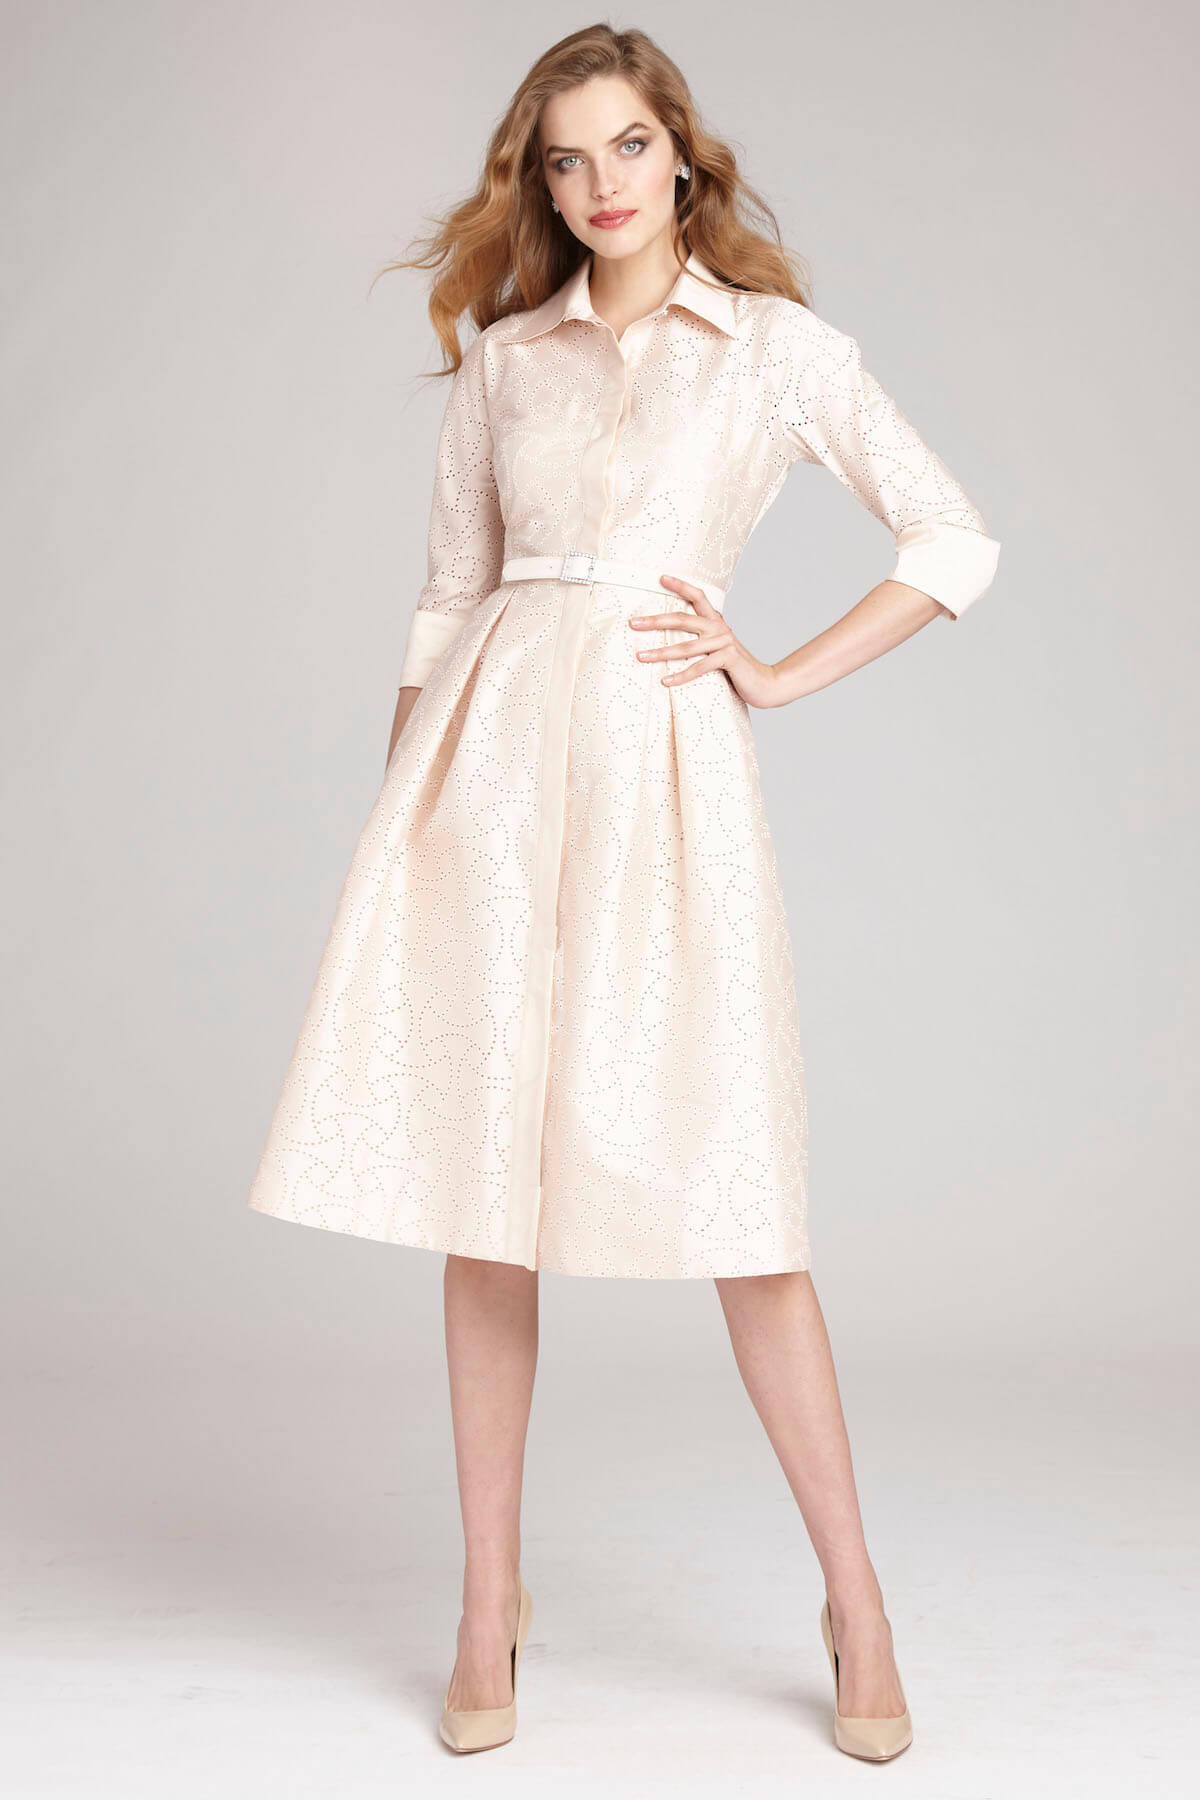 Long Sleeves Short Ball Gown Dress with Belt   Bycouturier